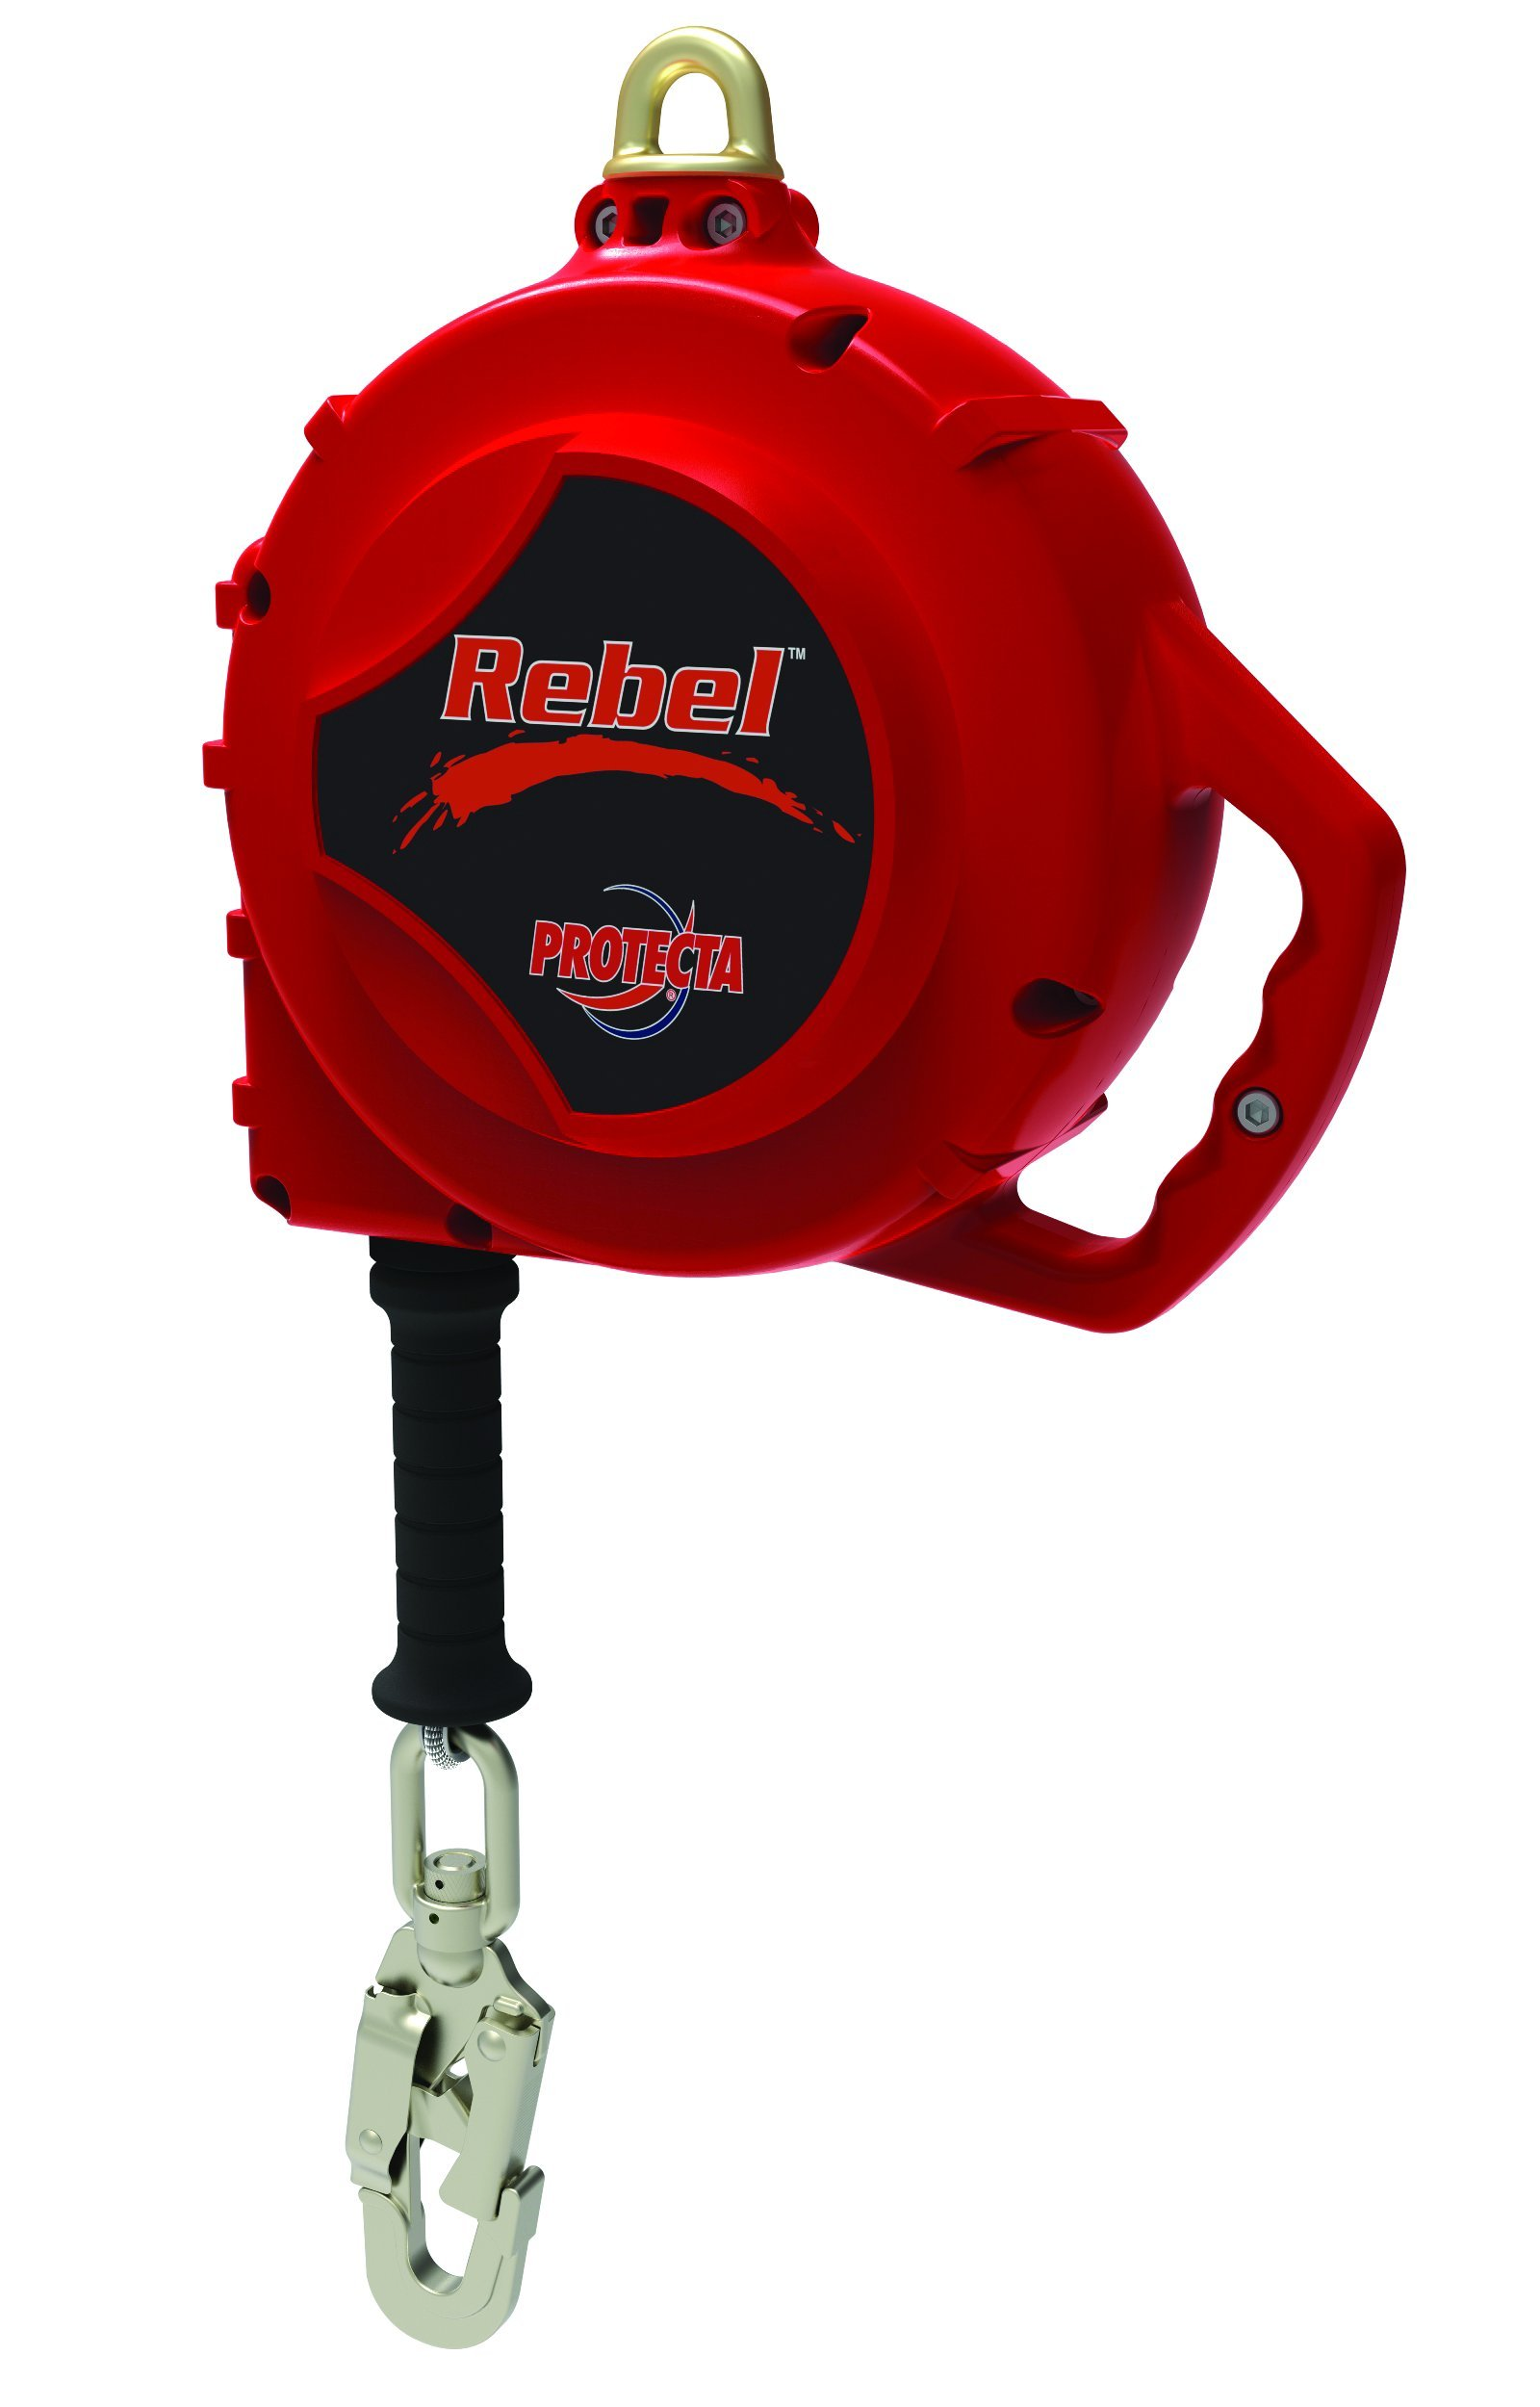 3M Protecta Rebel 3590550 Self Retracting Lifeline, 50' Galvanized Cable, Thermoplastic Housing, Carabiner, 420 lb Capacity, Red